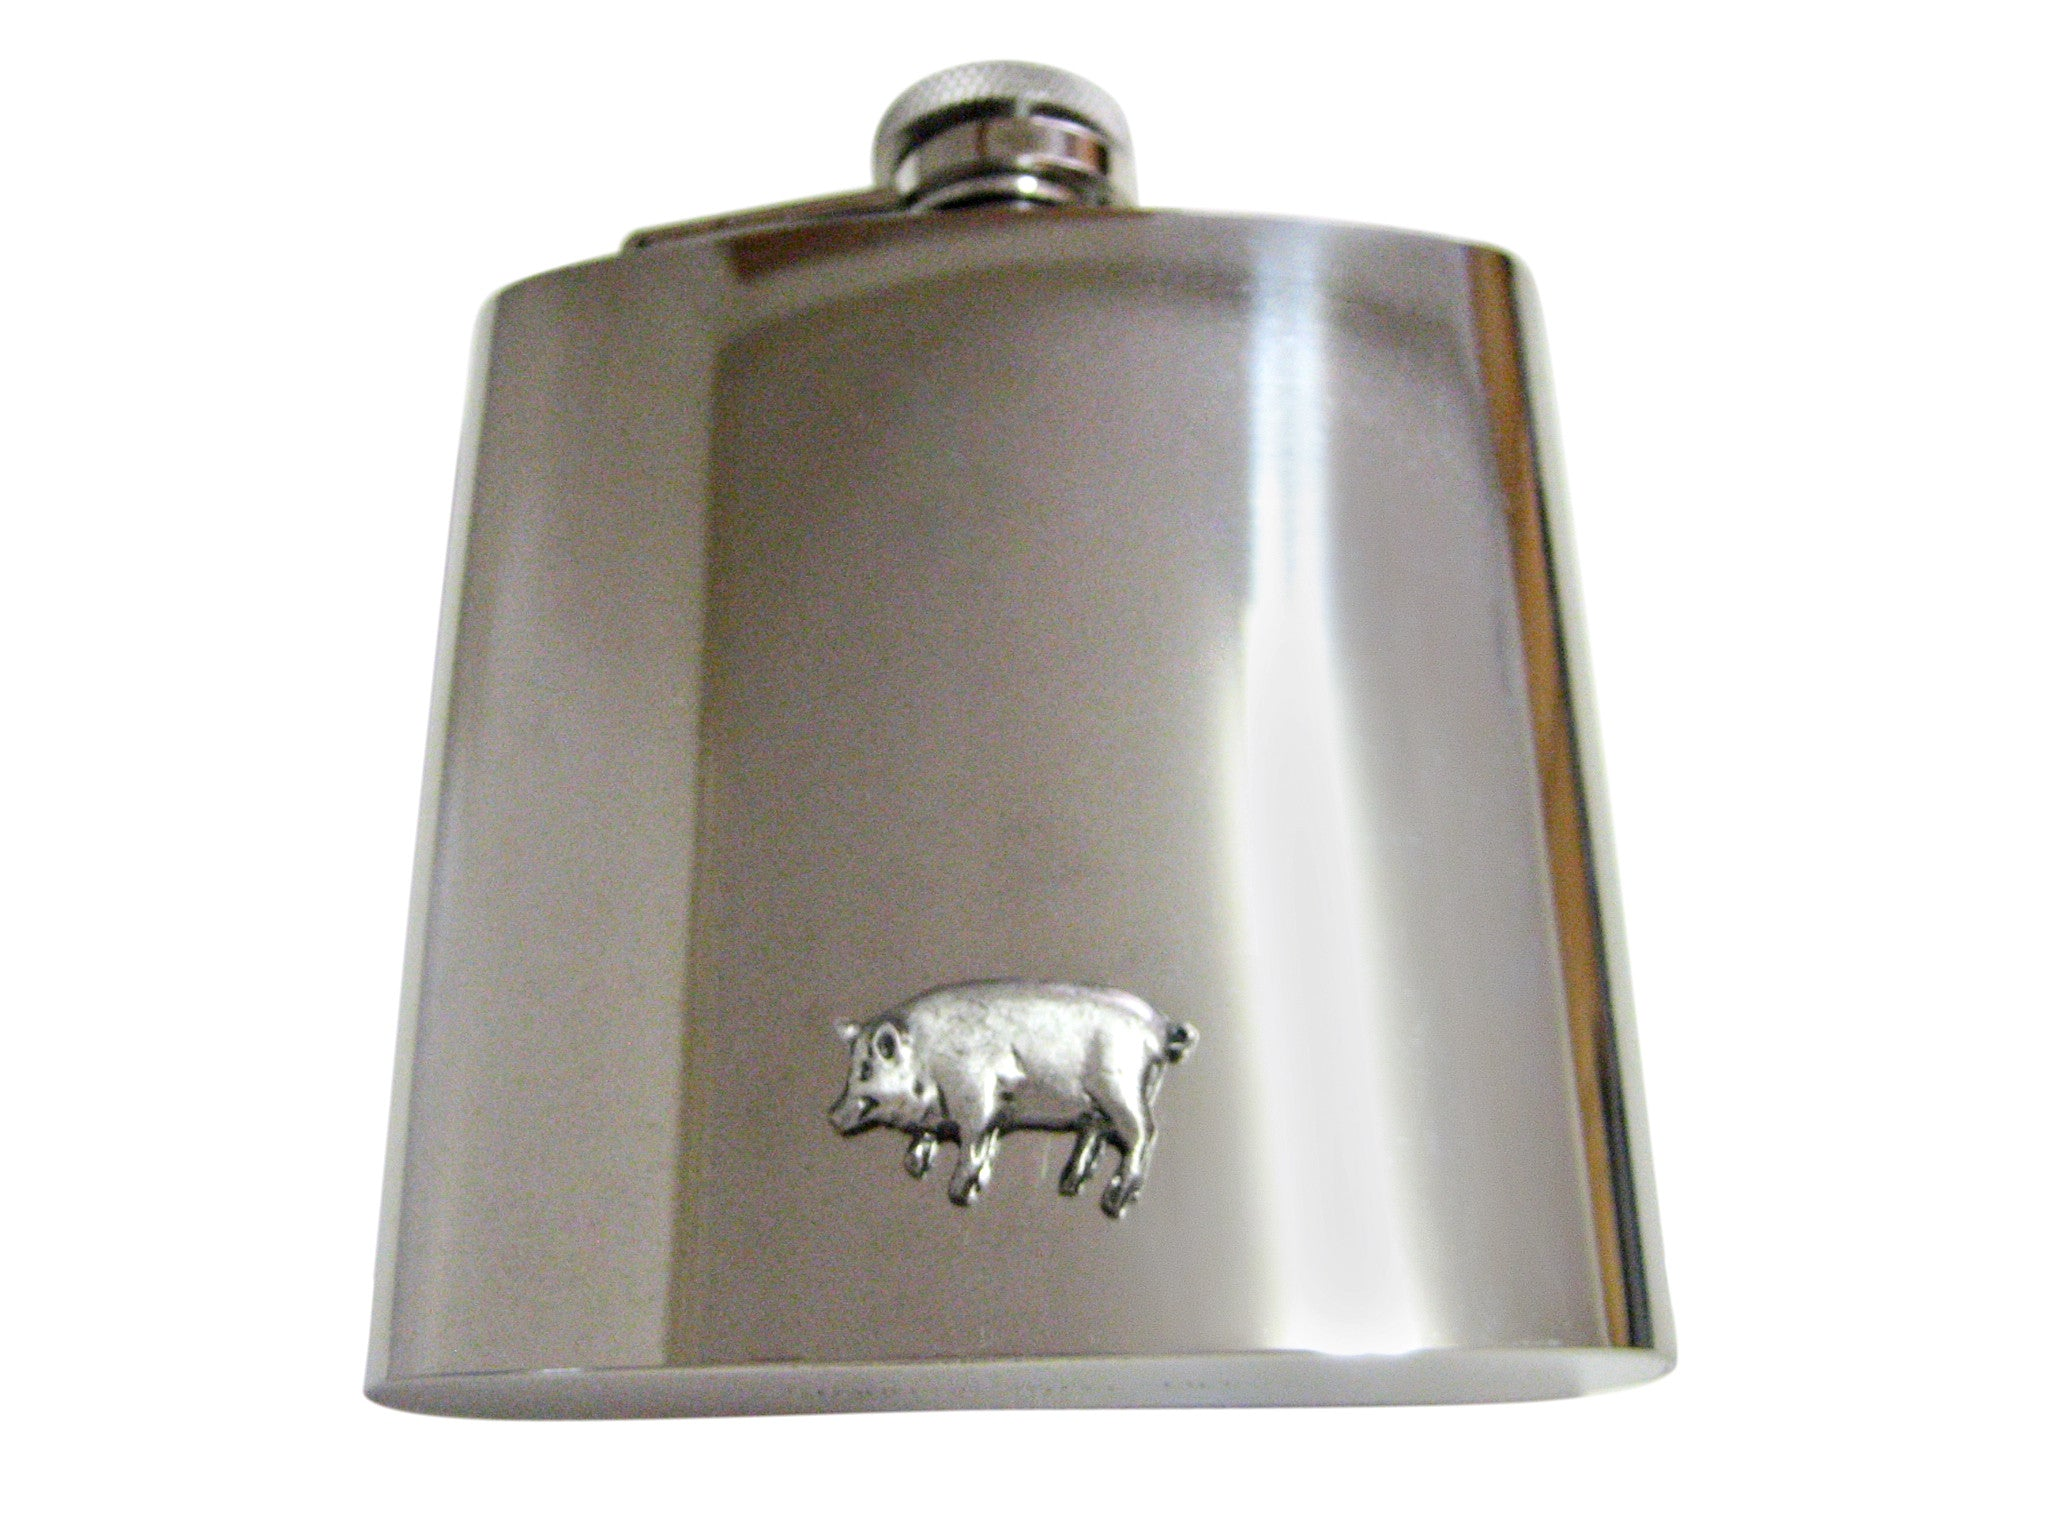 Pewter Pig 6 Oz. Stainless Steel Flask